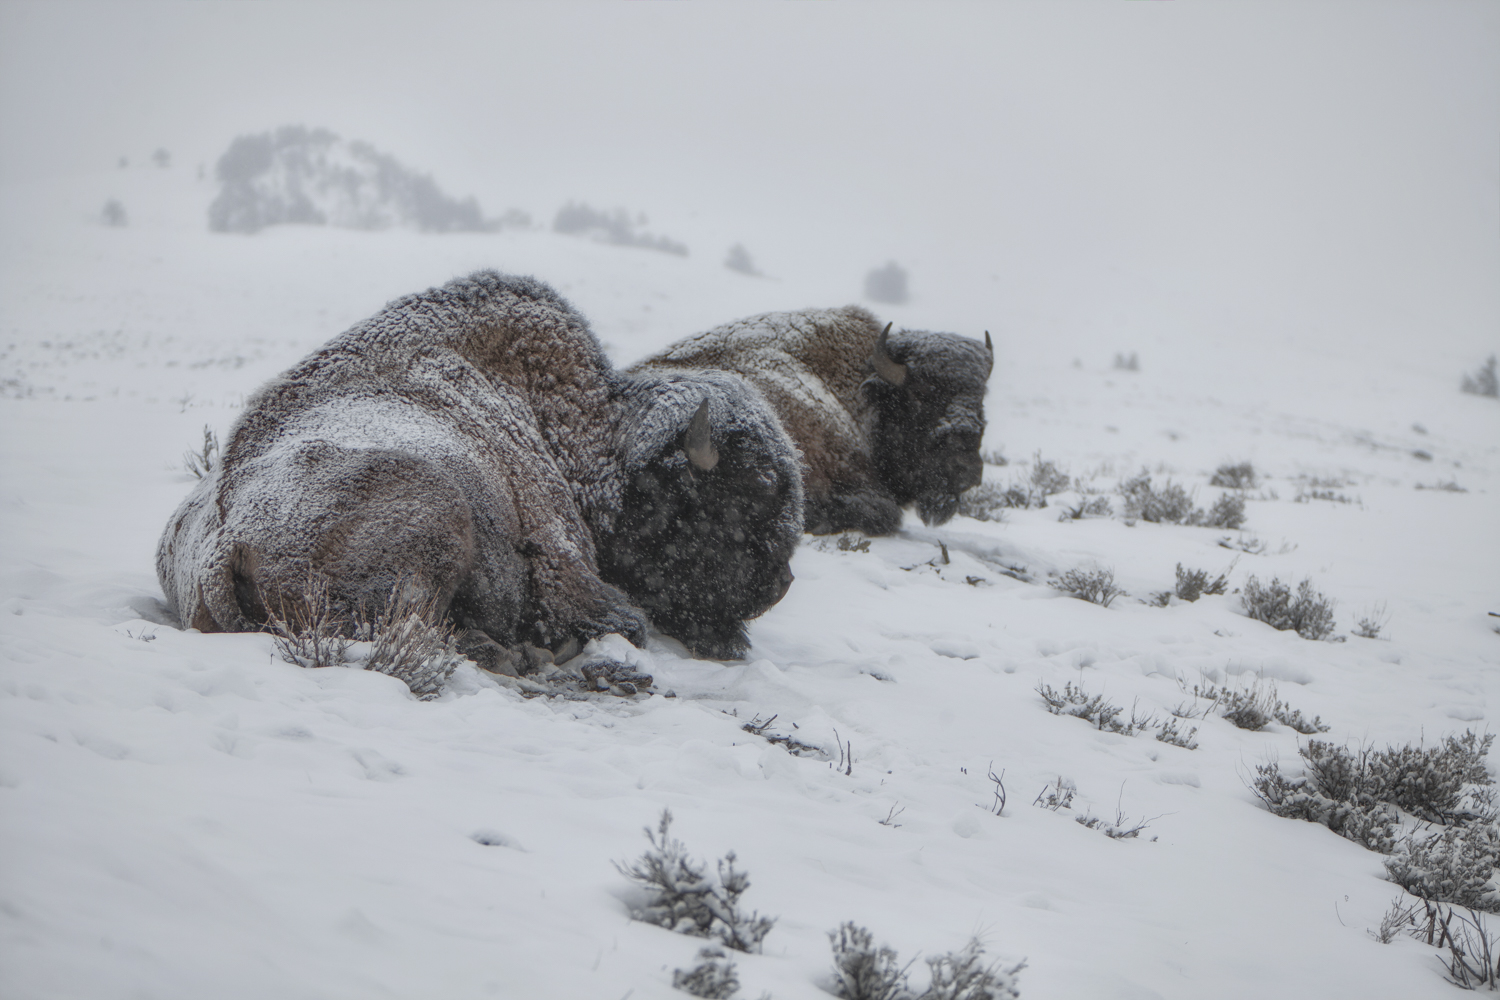 Bison weathering a storm, you can feel a chill just viewing this image